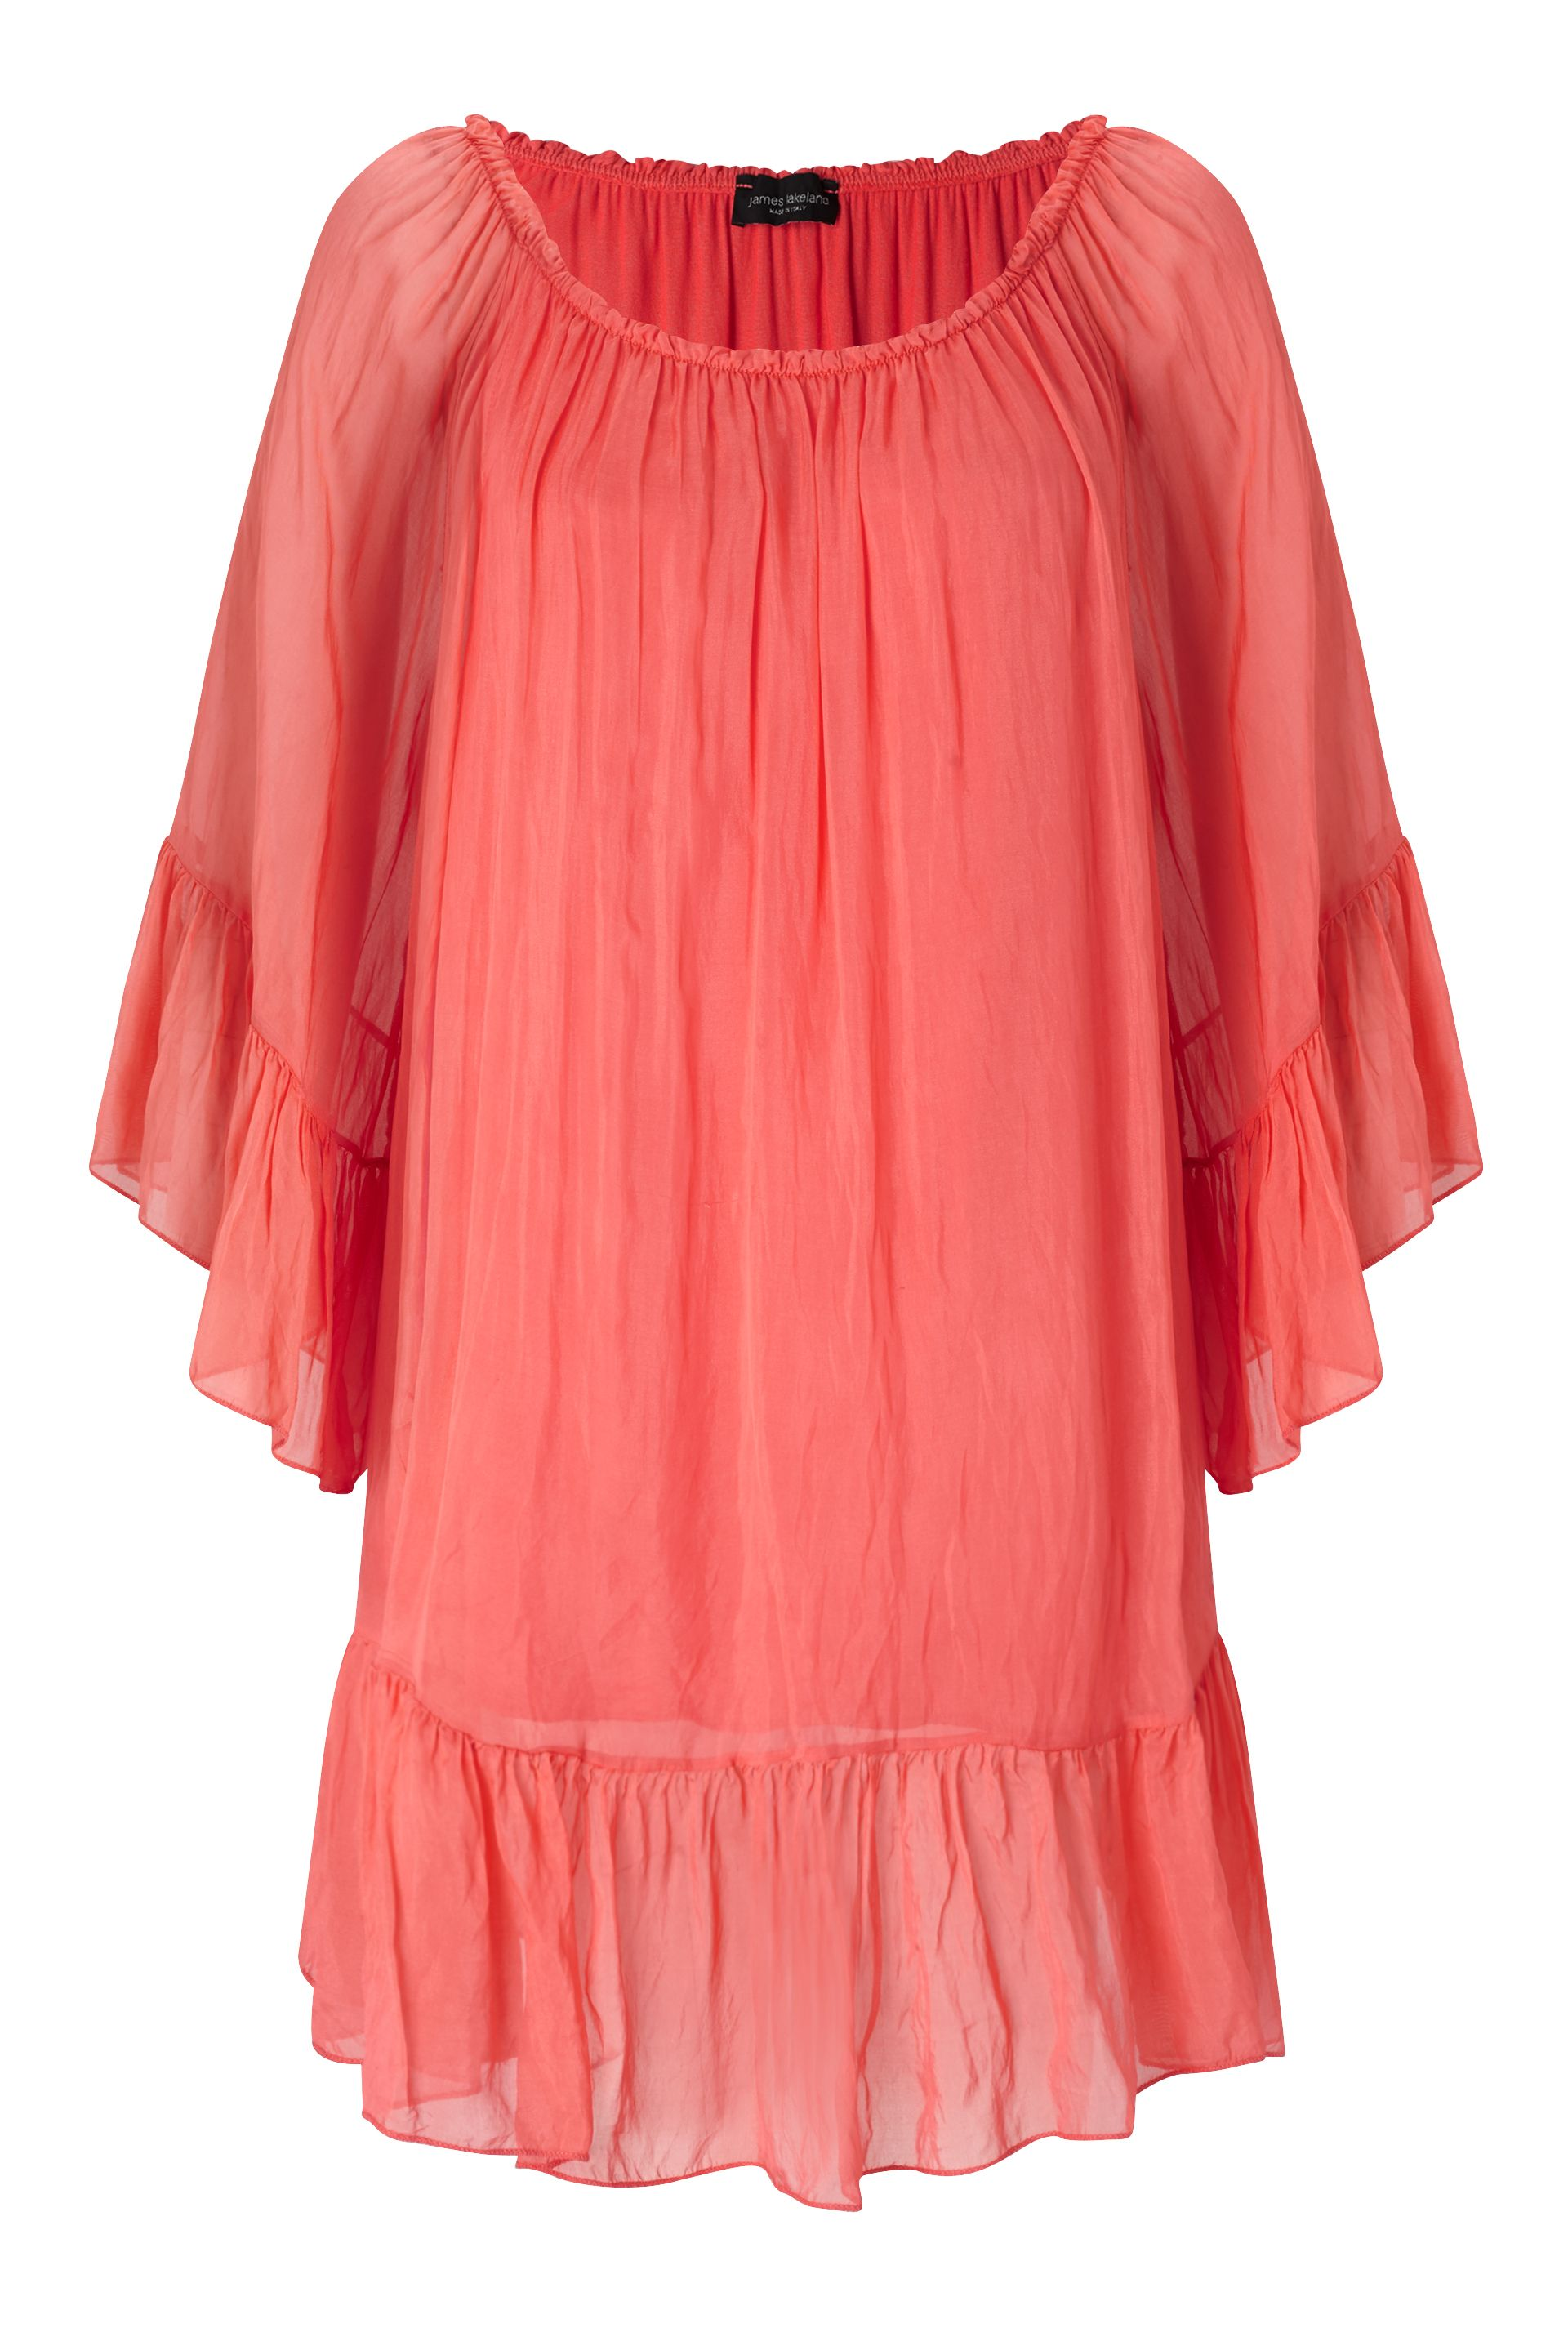 James Lakeland Silk Tunic, Orange